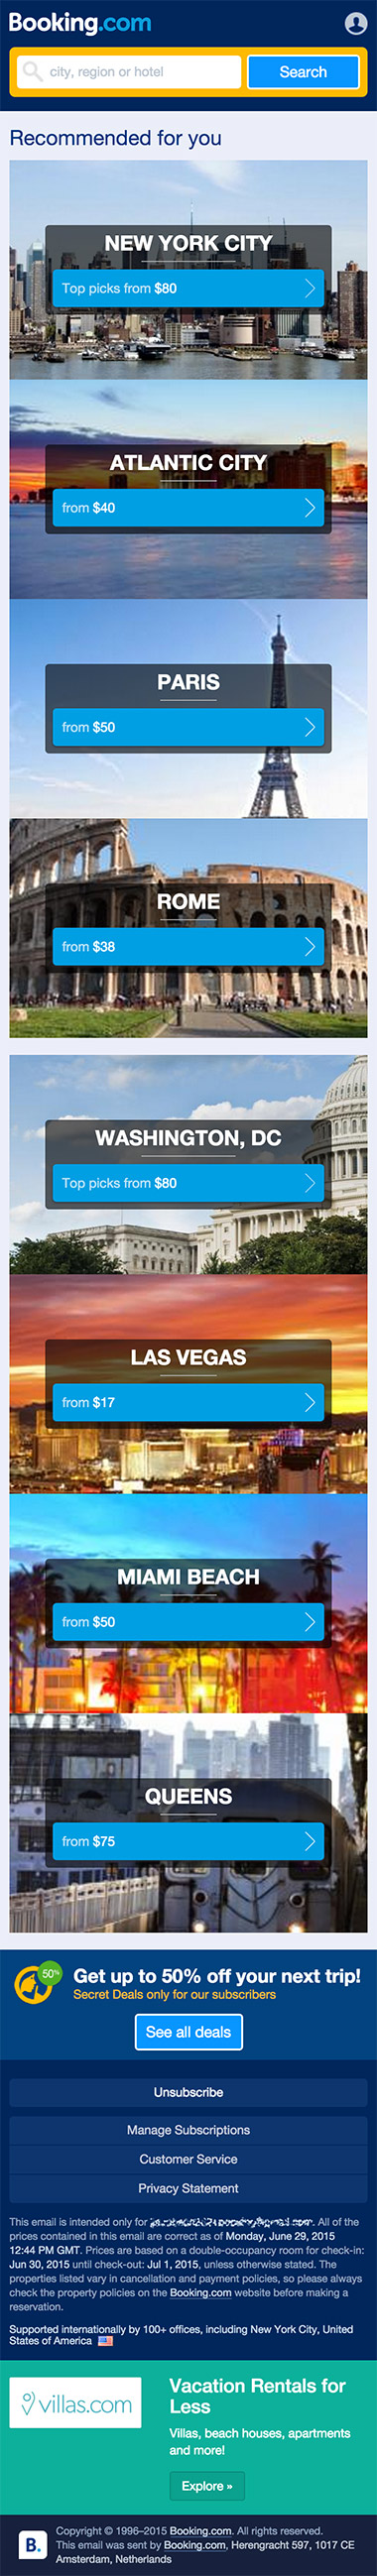 BookingCom hotel travel responsive email design